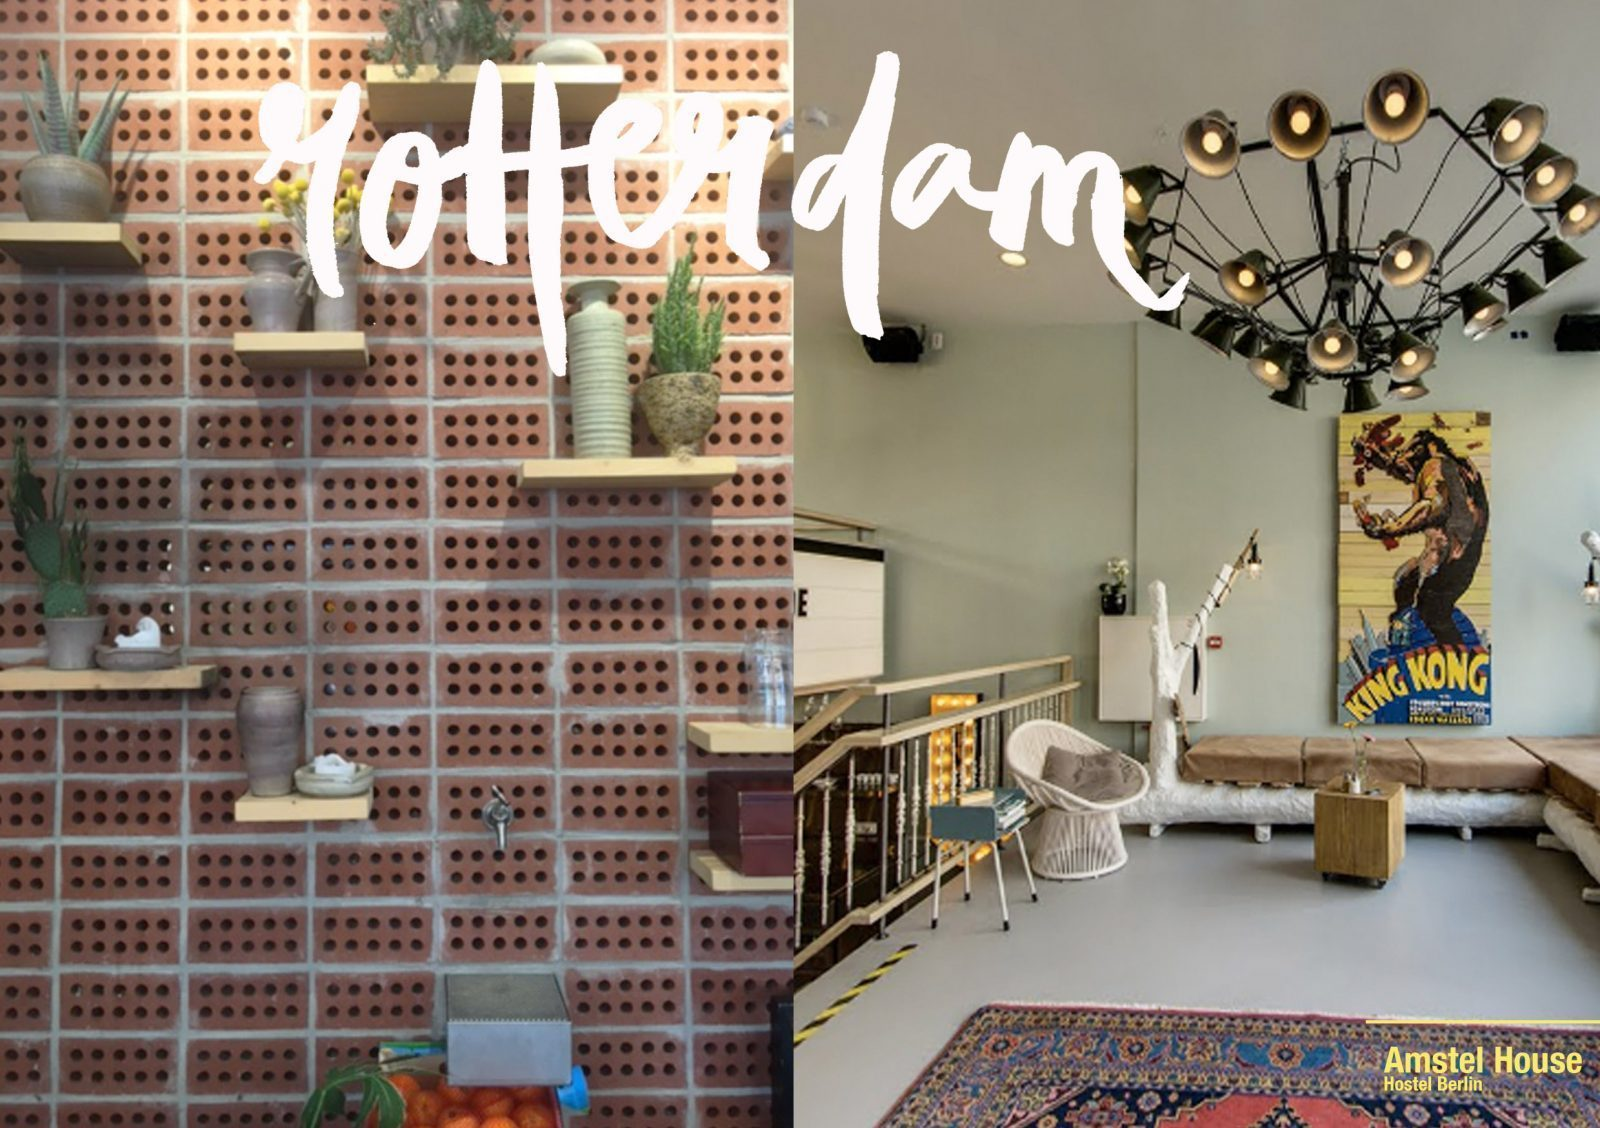 must visit hot spots in Rotterdam